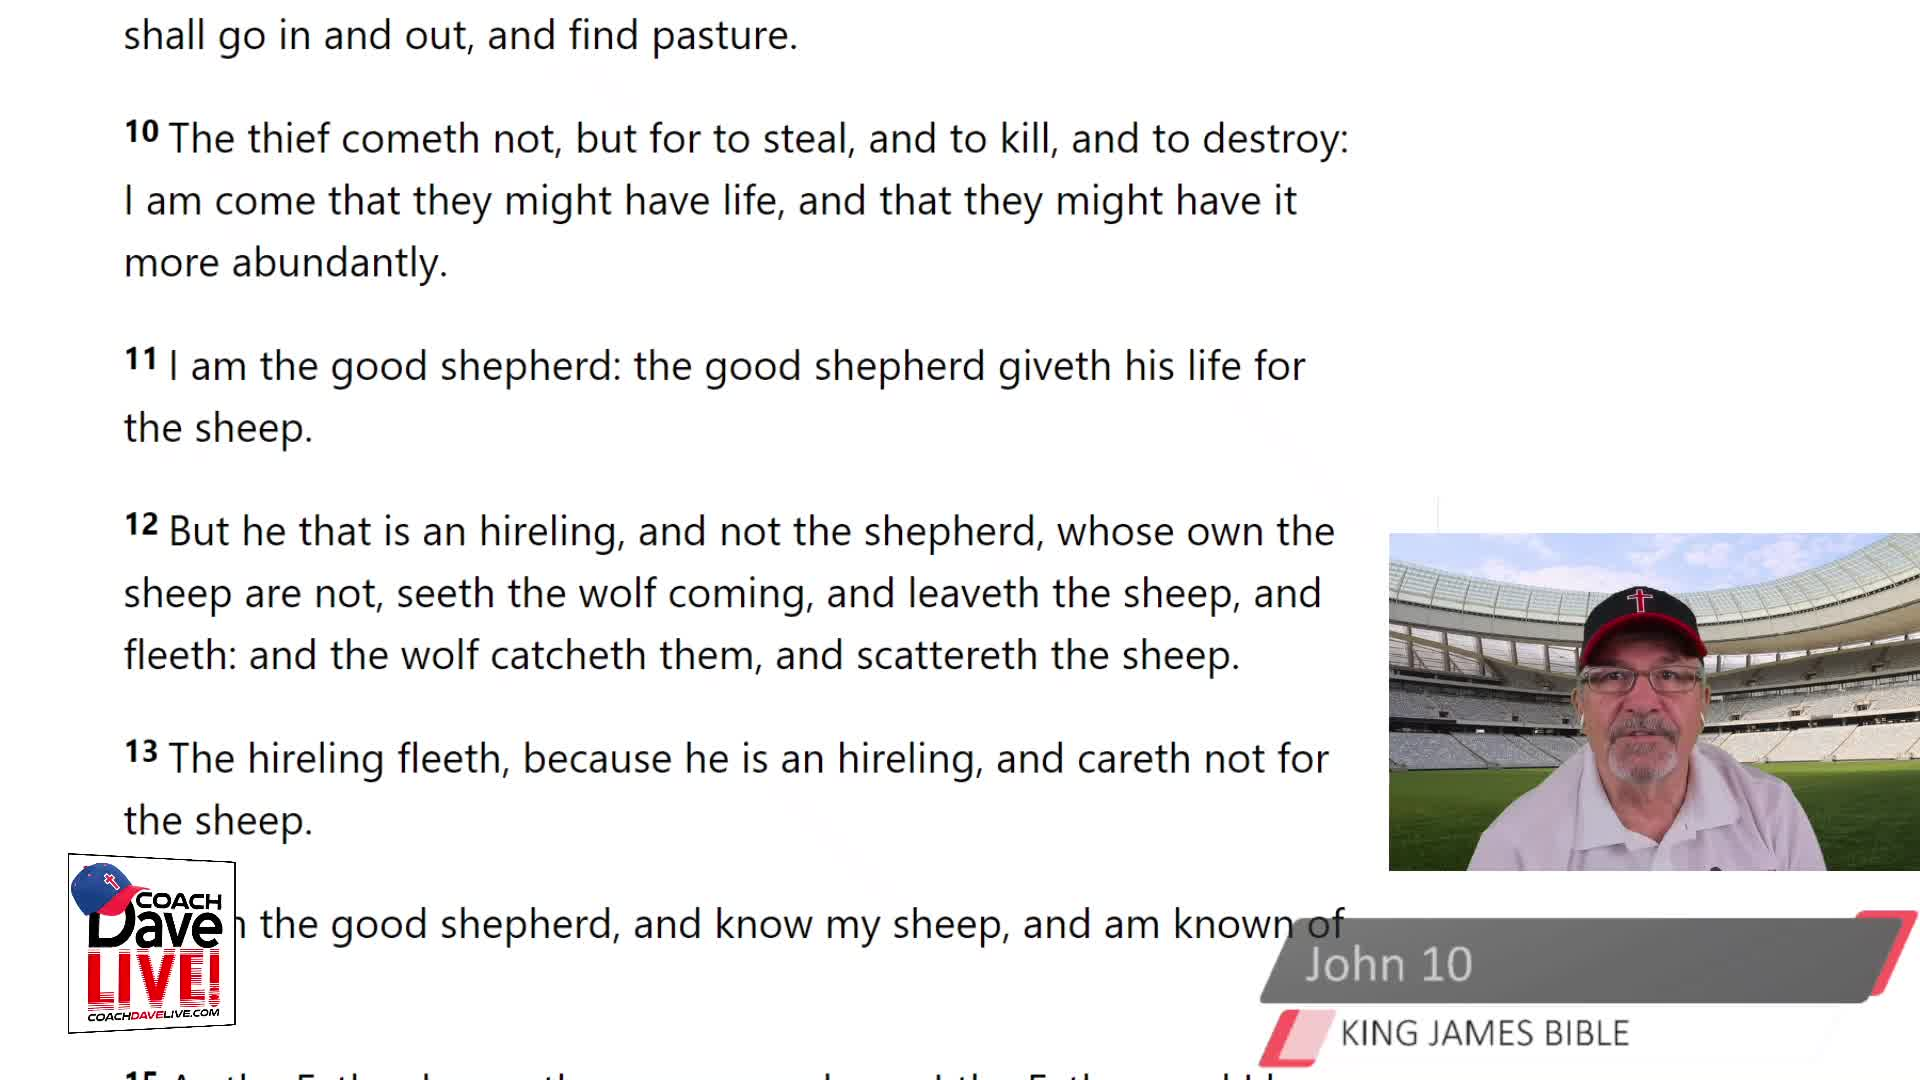 Coach Dave LIVE | 4-6-2021 | TRUE SHEPHERDS WILL DIE FOR THE SHEEP - AUDIO ONLY